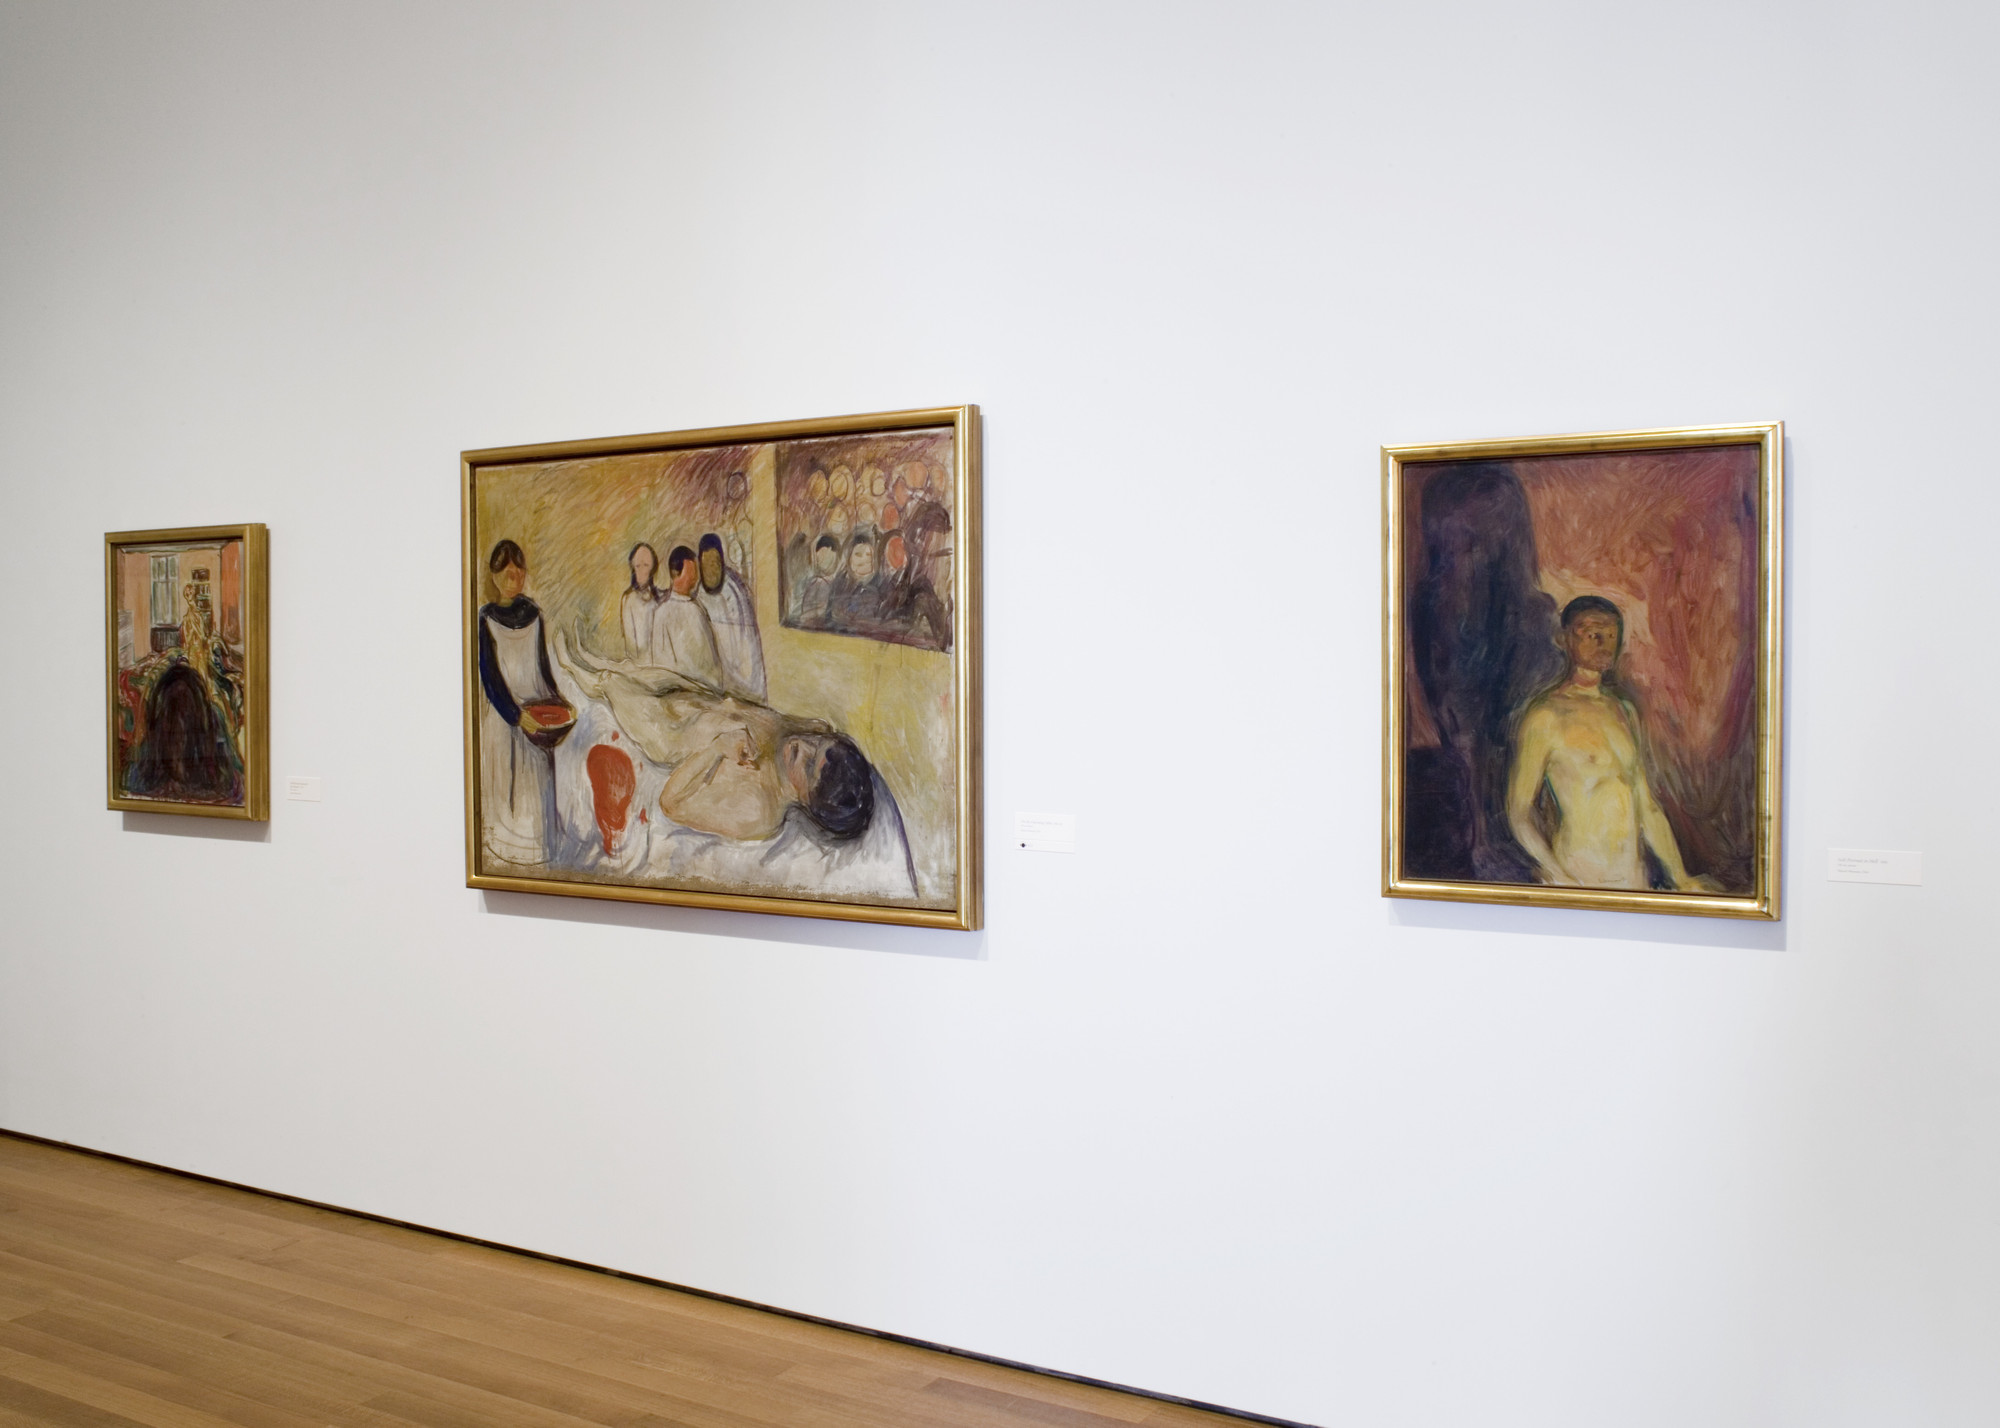 Installation view of Edvard Munch: The Modern Life of the Soul. Photo: Thomas Griesel